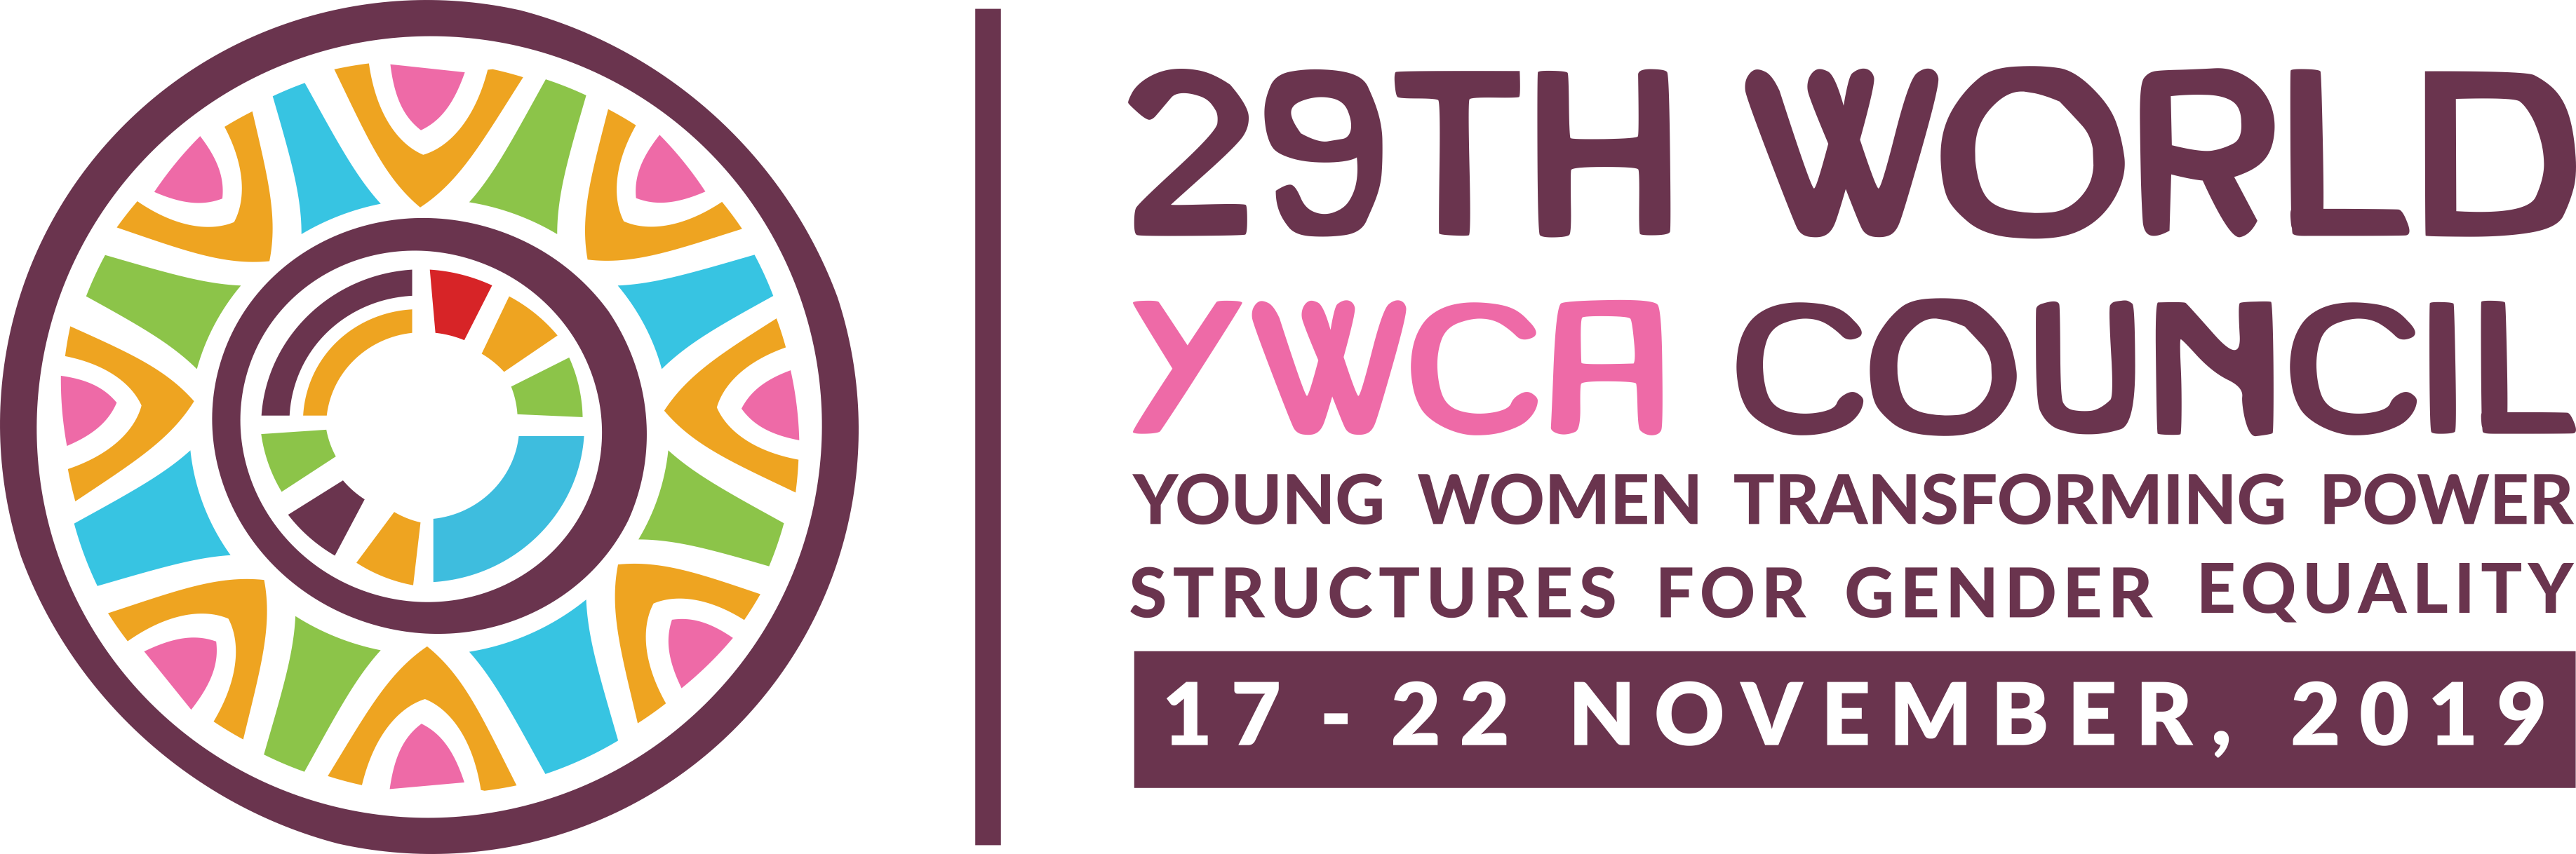 29th YWCA World Council